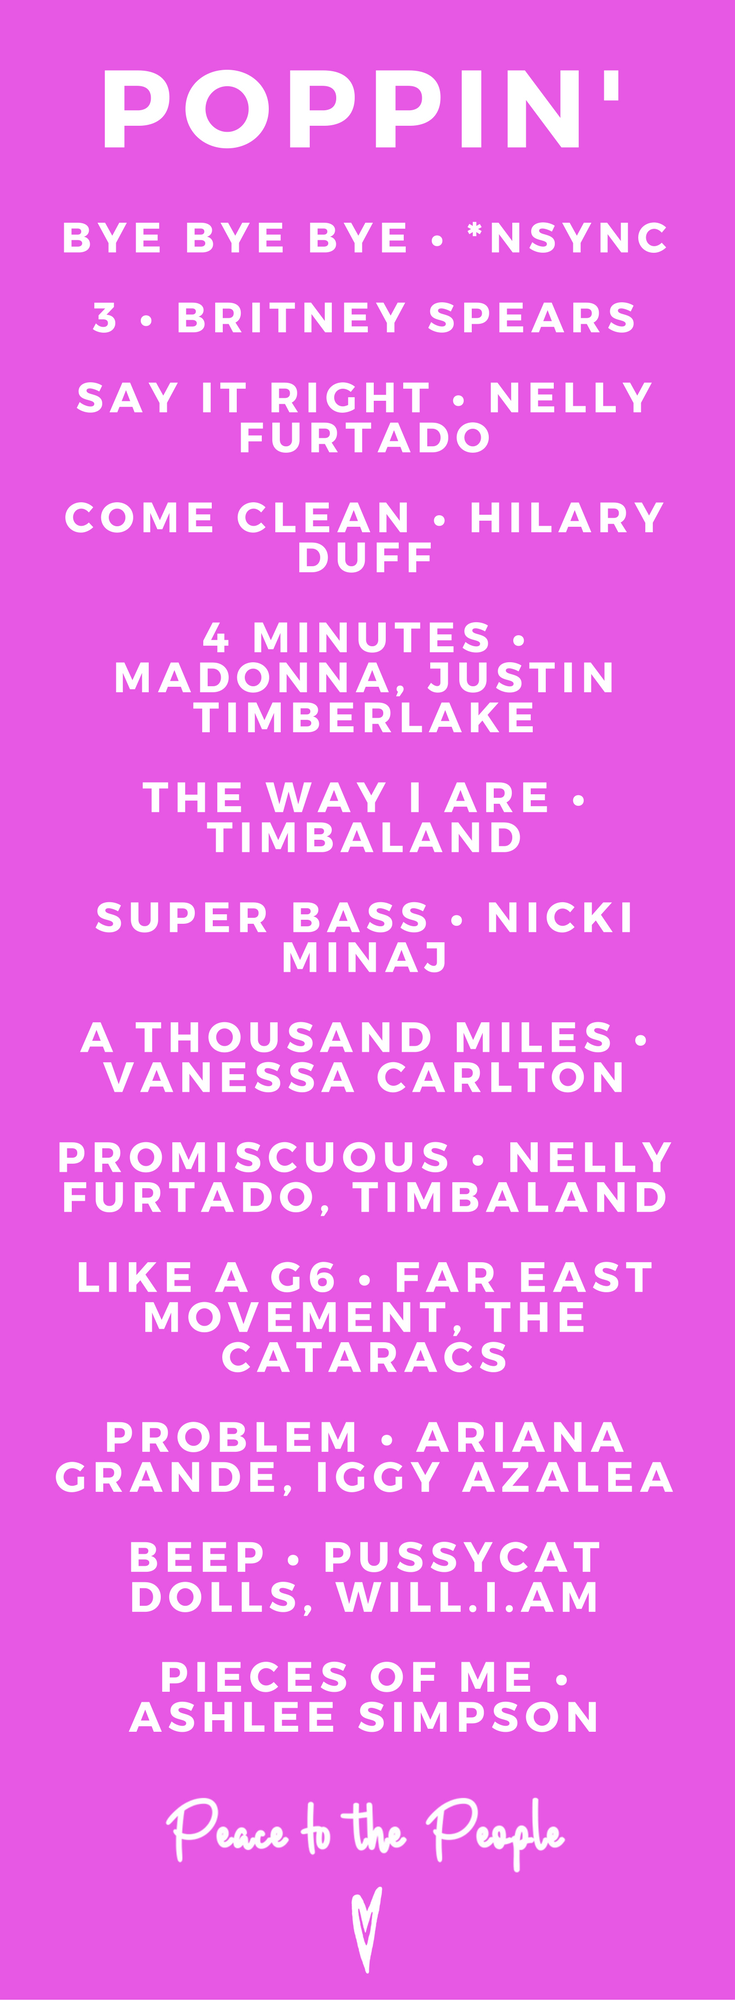 Poppin' • Peace to the People • Music, Playlists, Yoga, Fitness, Wellness, Inspiration.png